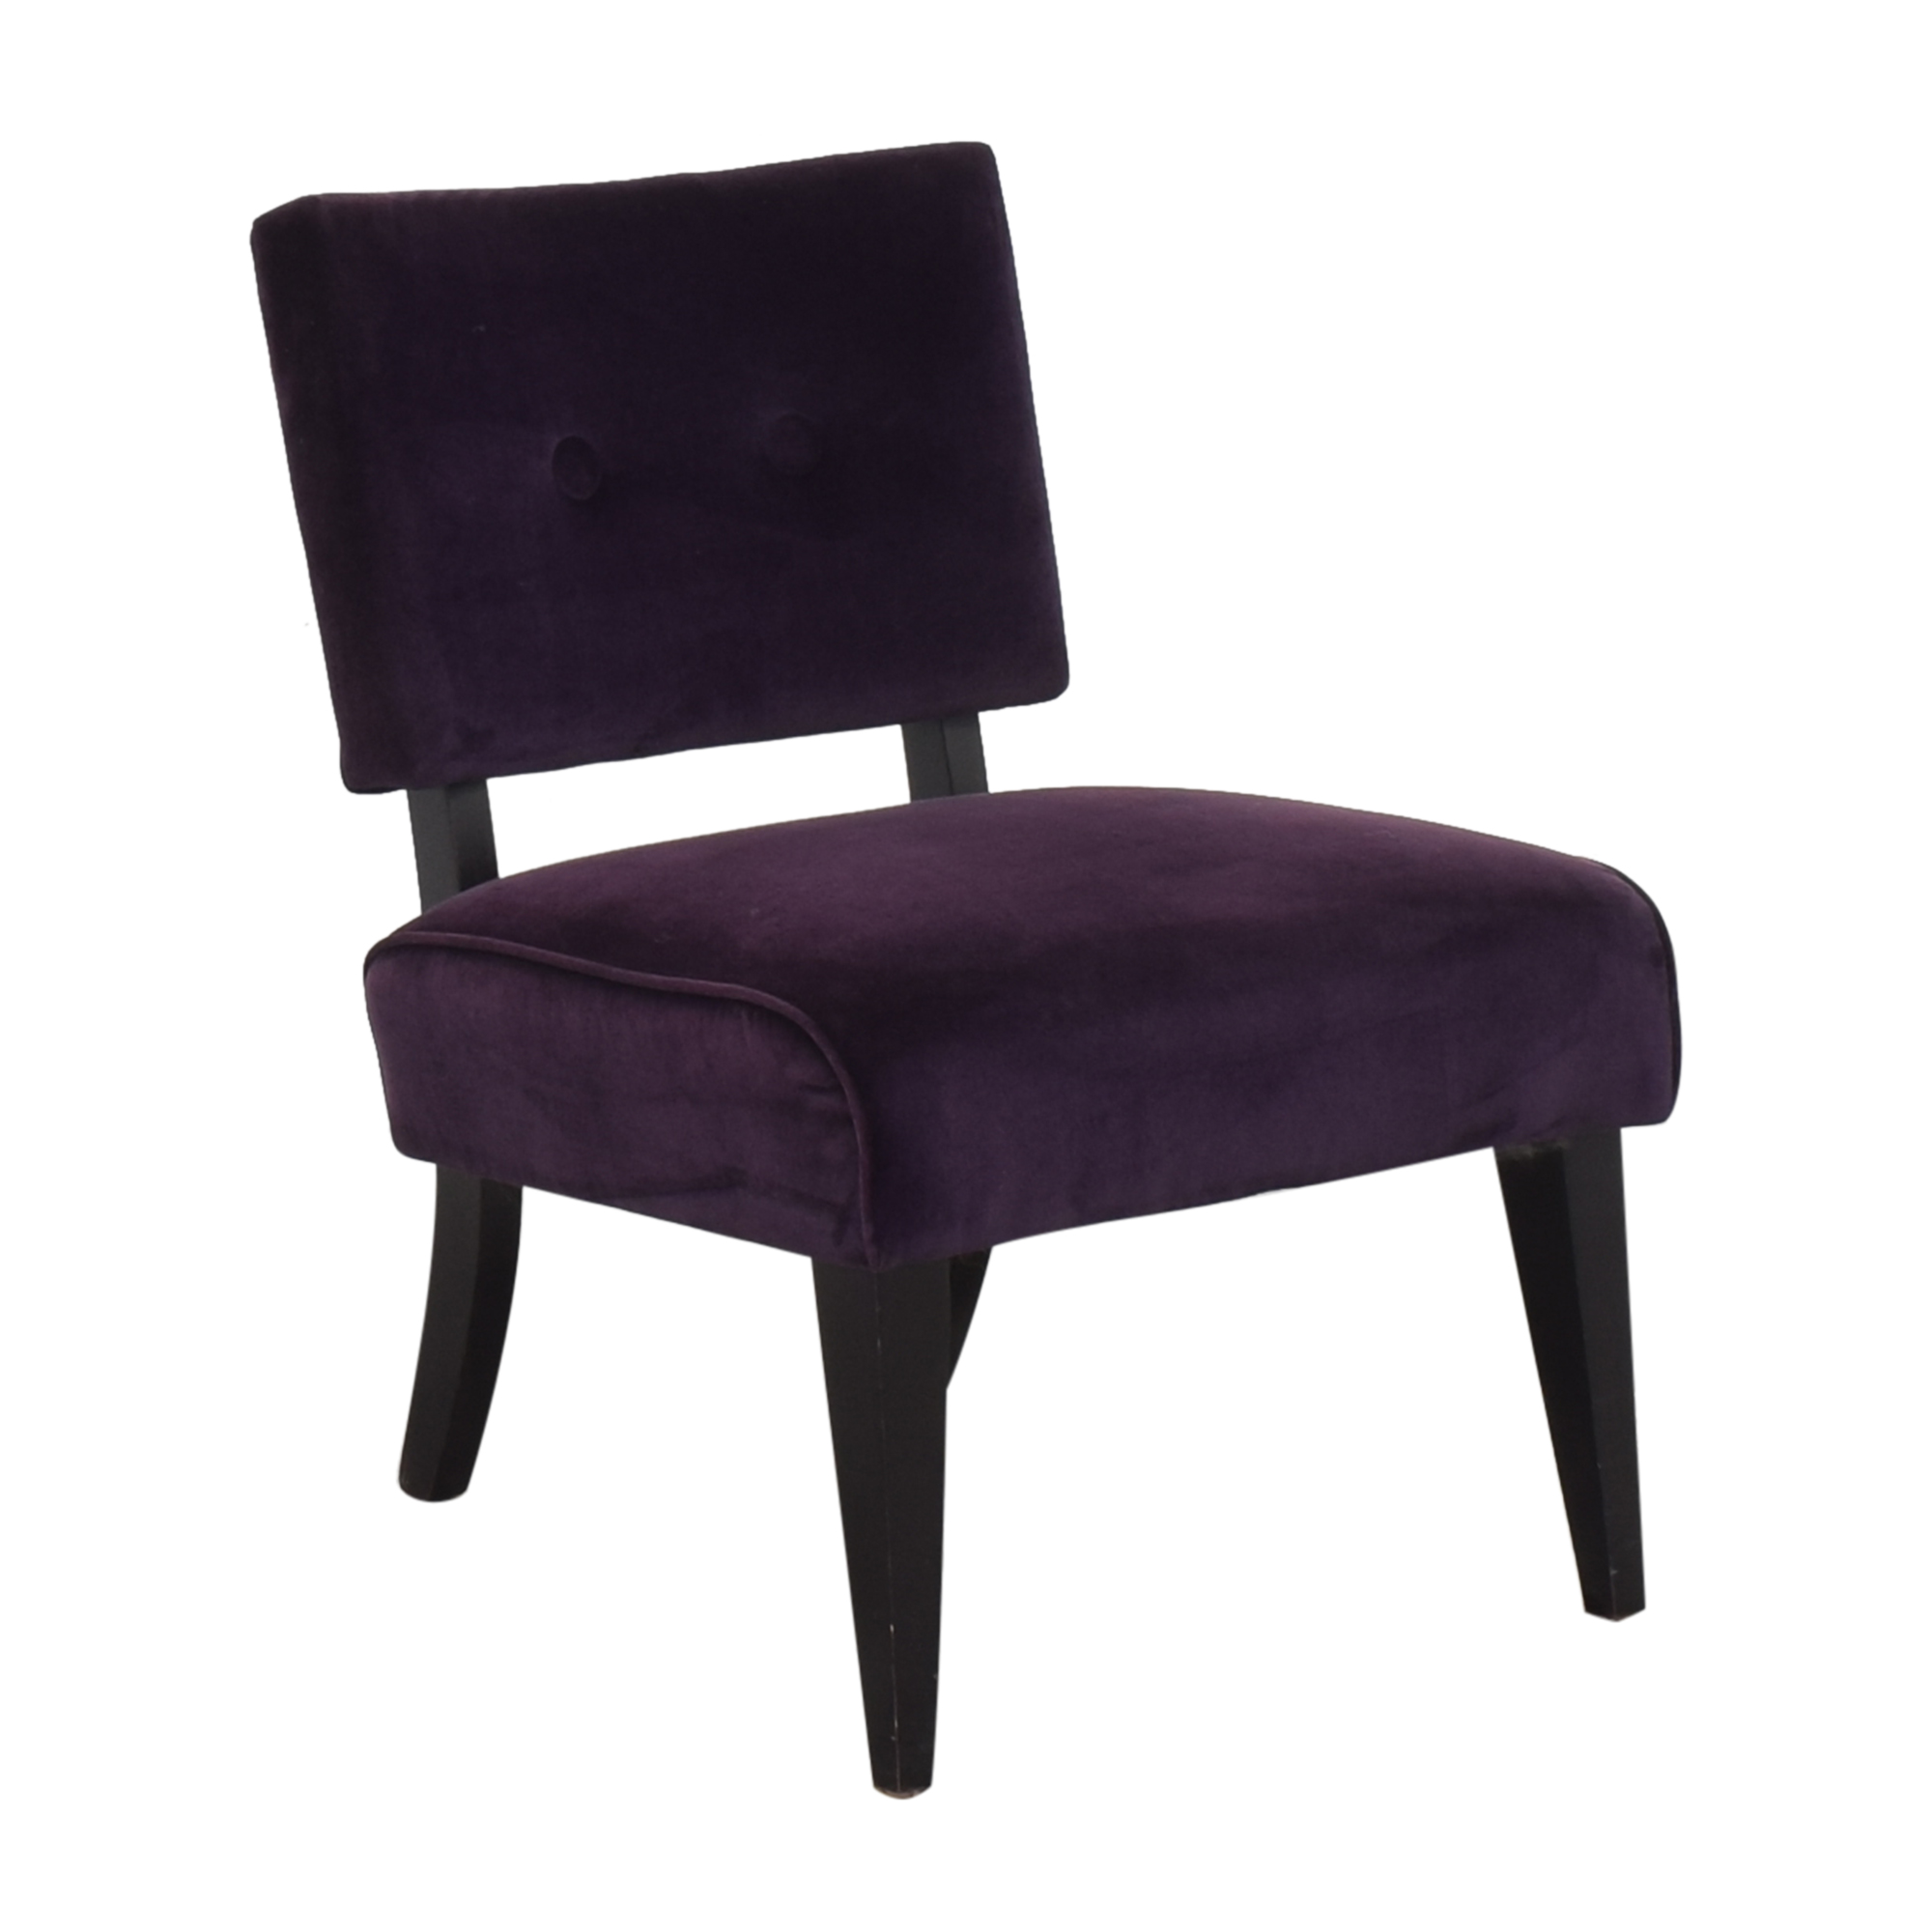 shop Crate & Barrel Accent Chair Crate & Barrel Accent Chairs